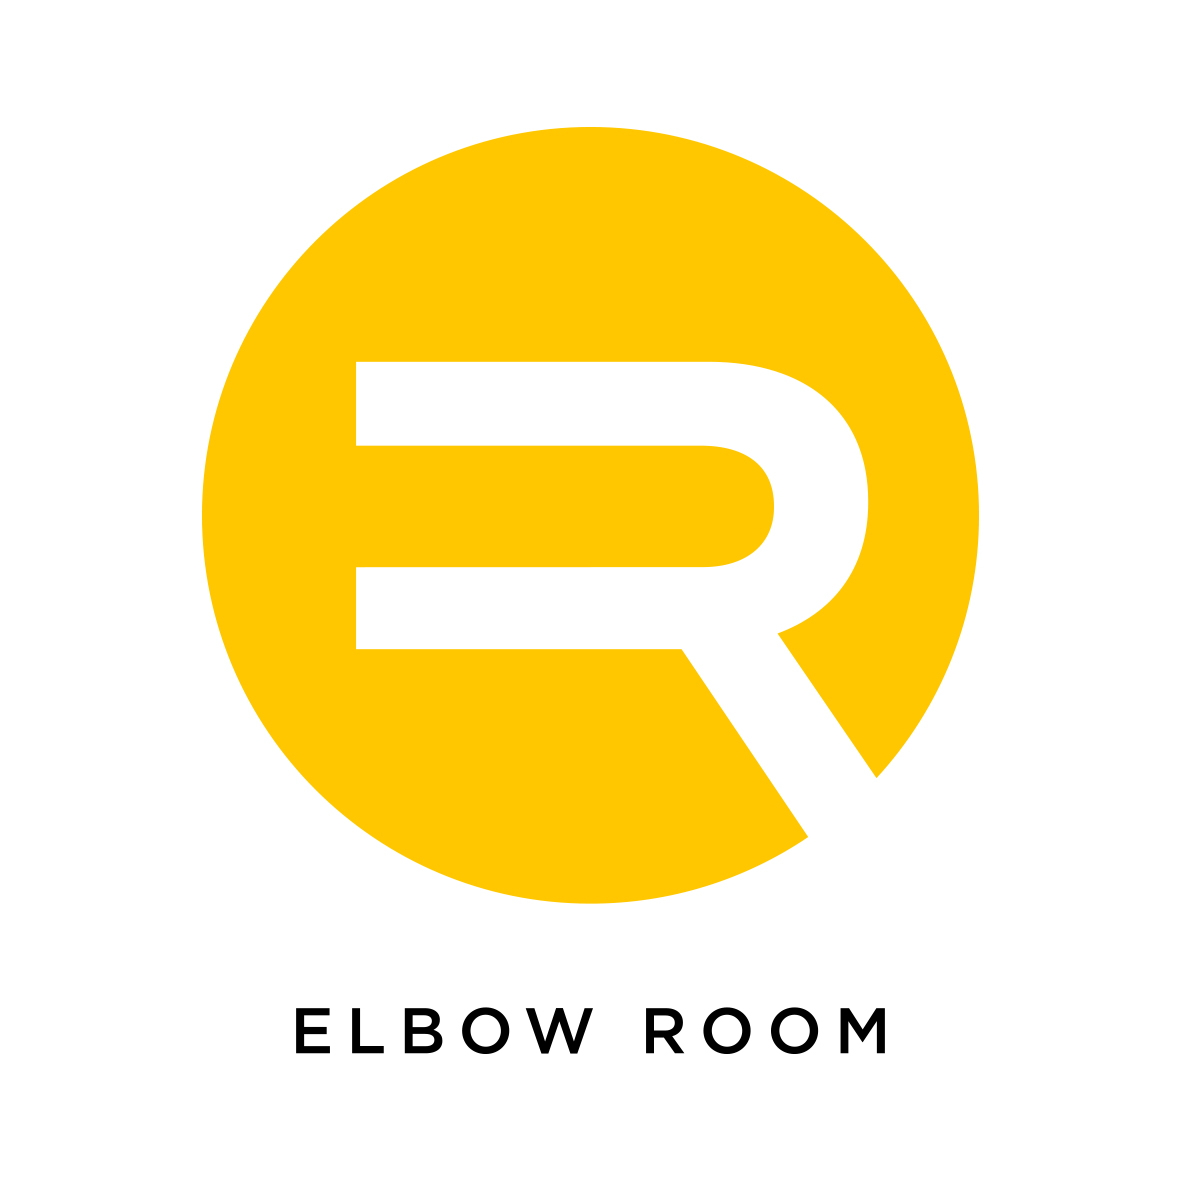 elbow-room-logo22.jpg